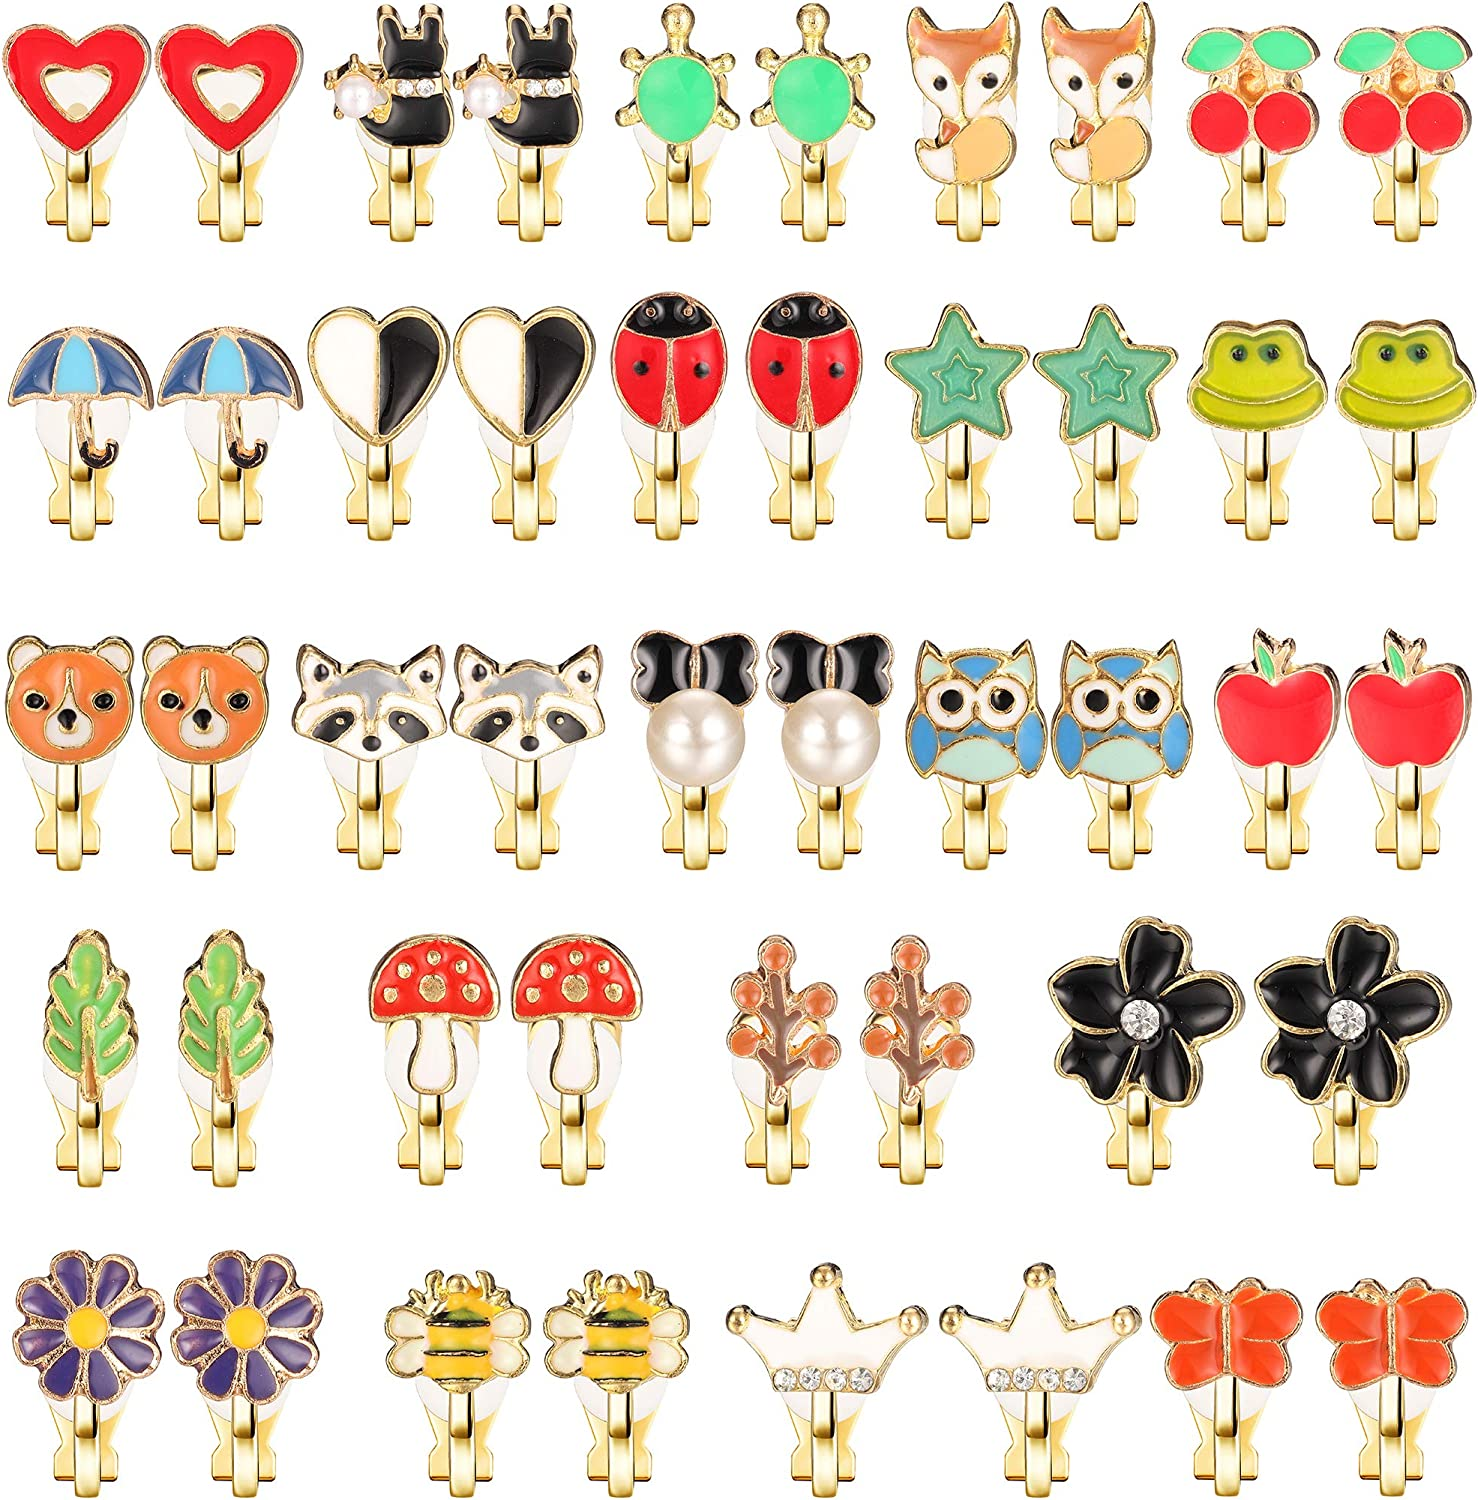 SAILIMUE 23 Pairs Clip On Earrings Set for Women Love Umbrella Tree Flower Mushroom Cherry Apple Fox Frog Butterfly Crown Pearl Cute Non Piercing Earrings Painless Colorful Dress Up Accessories Birthday Gift